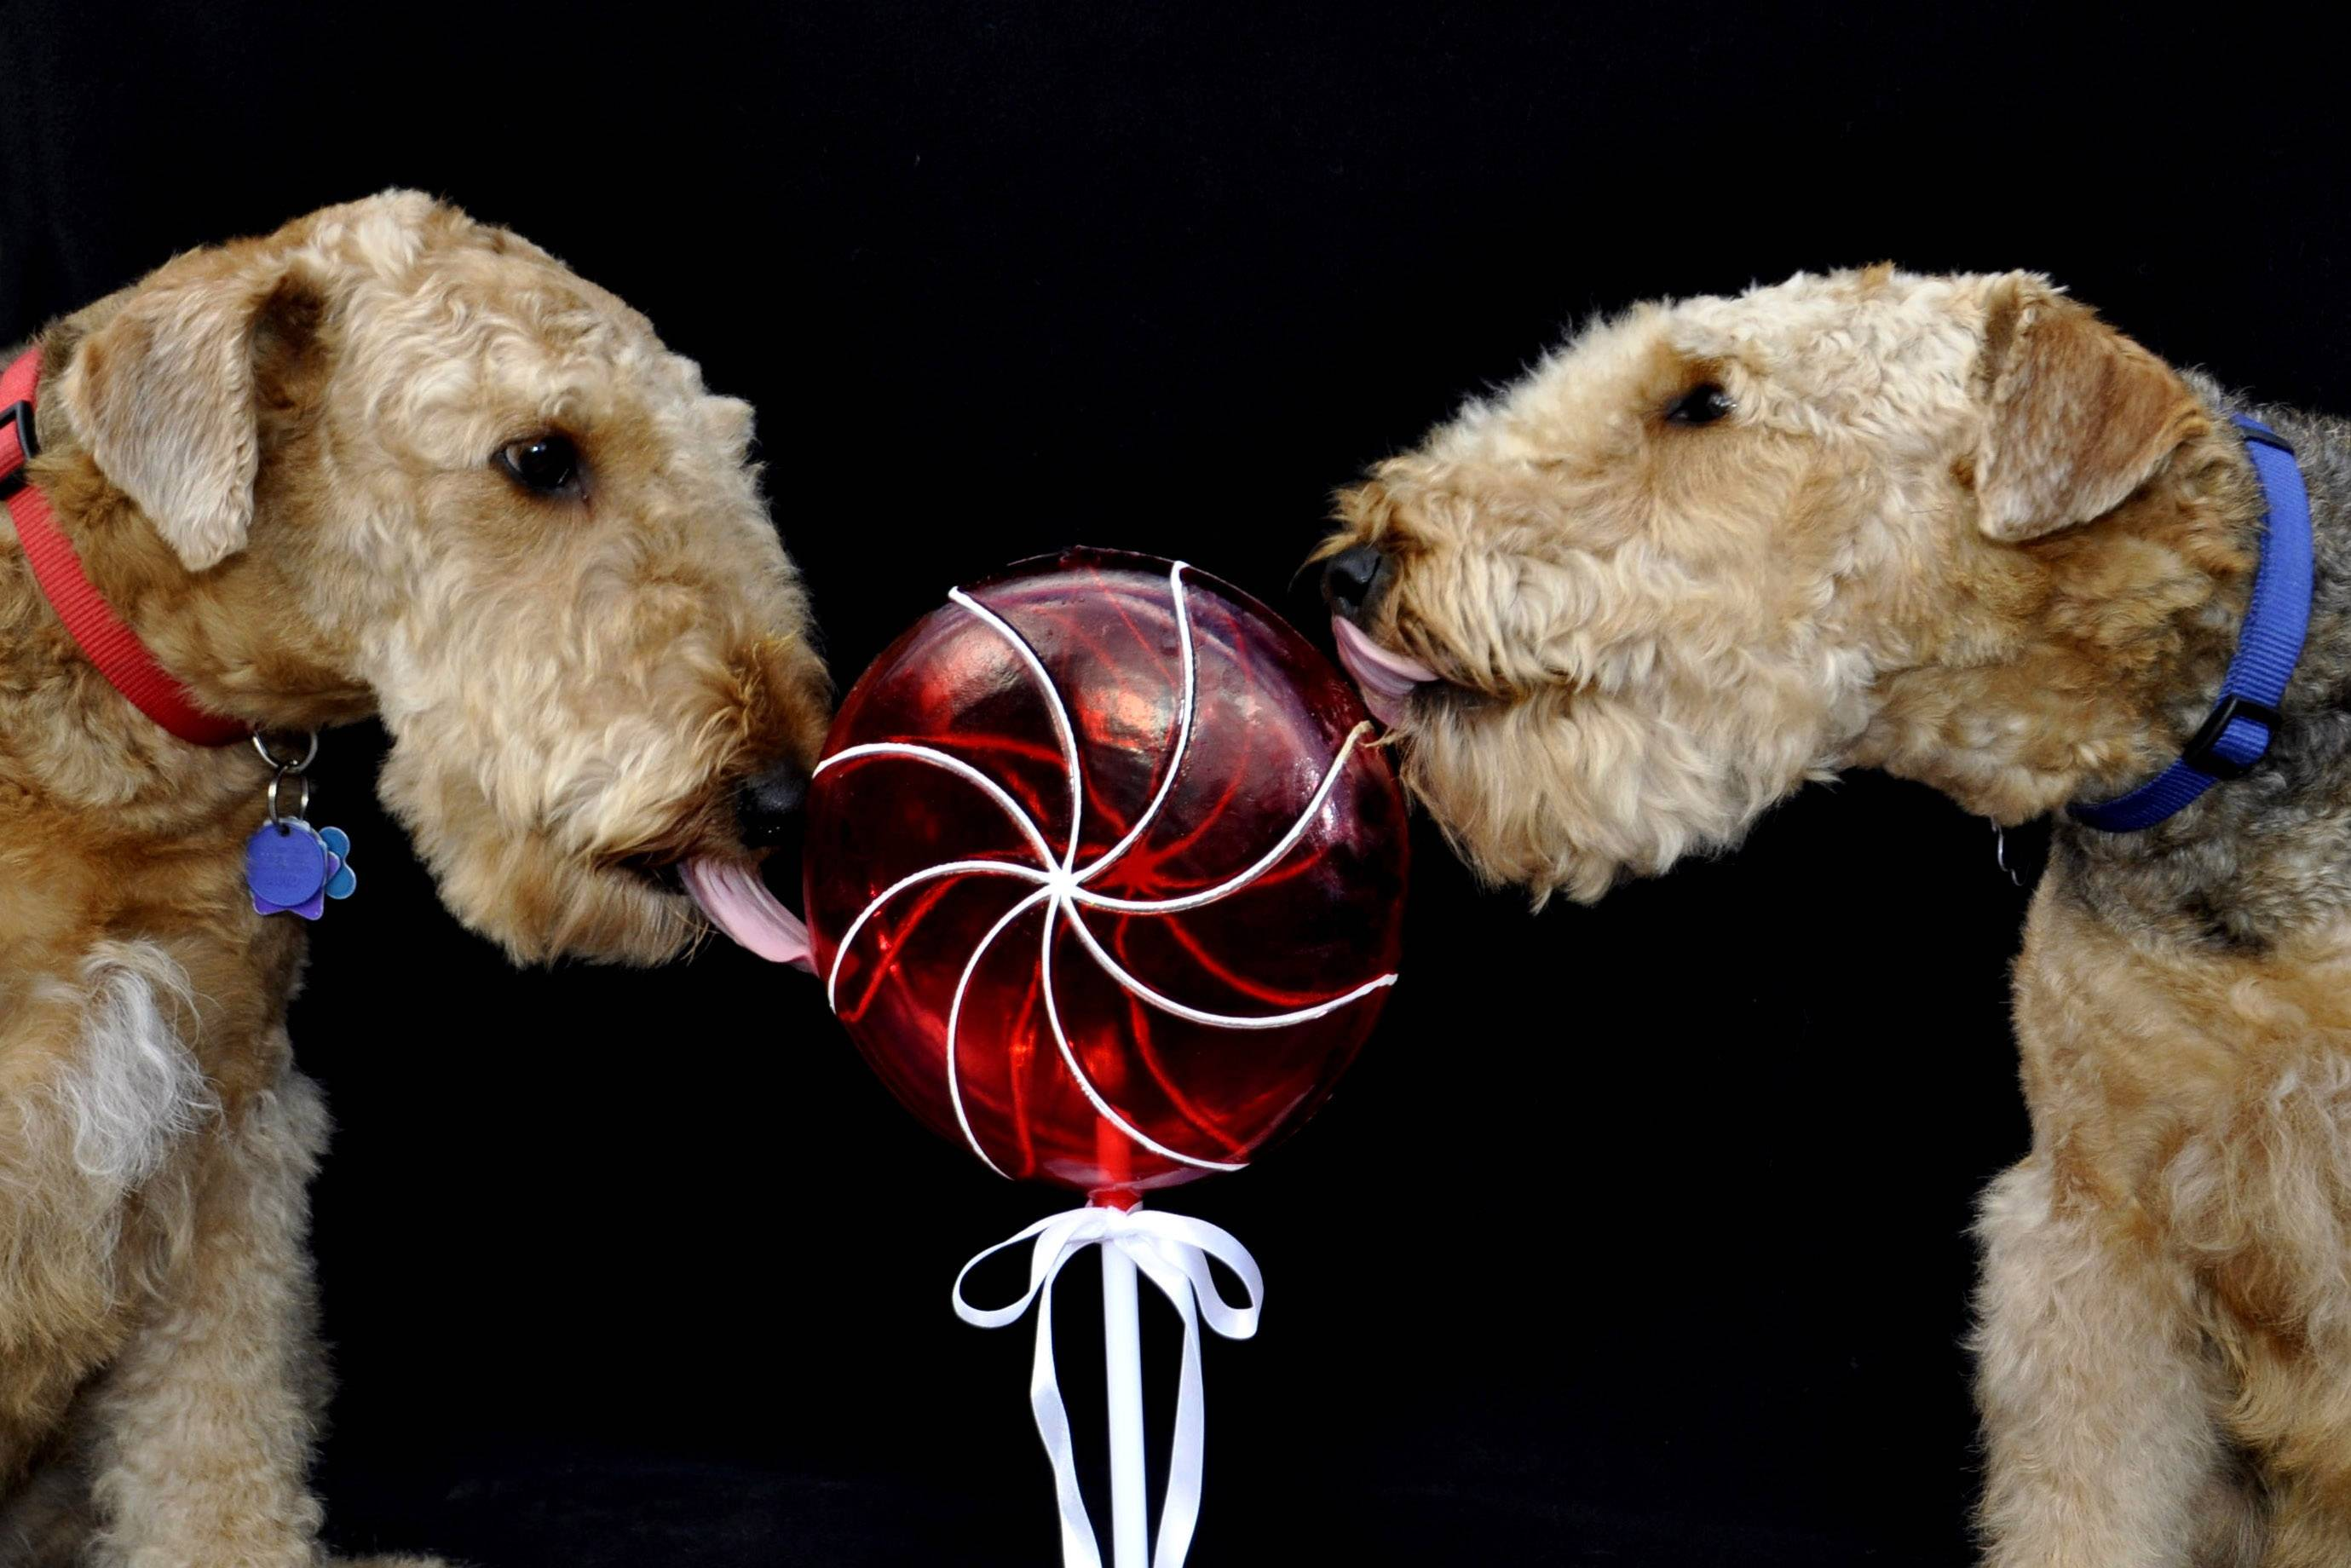 Two Airedales named Tara and Scarlett are posed last week with a candy-like decoration stuck in the ground coated with a little peanut butter to encourage the dogs to lick it.